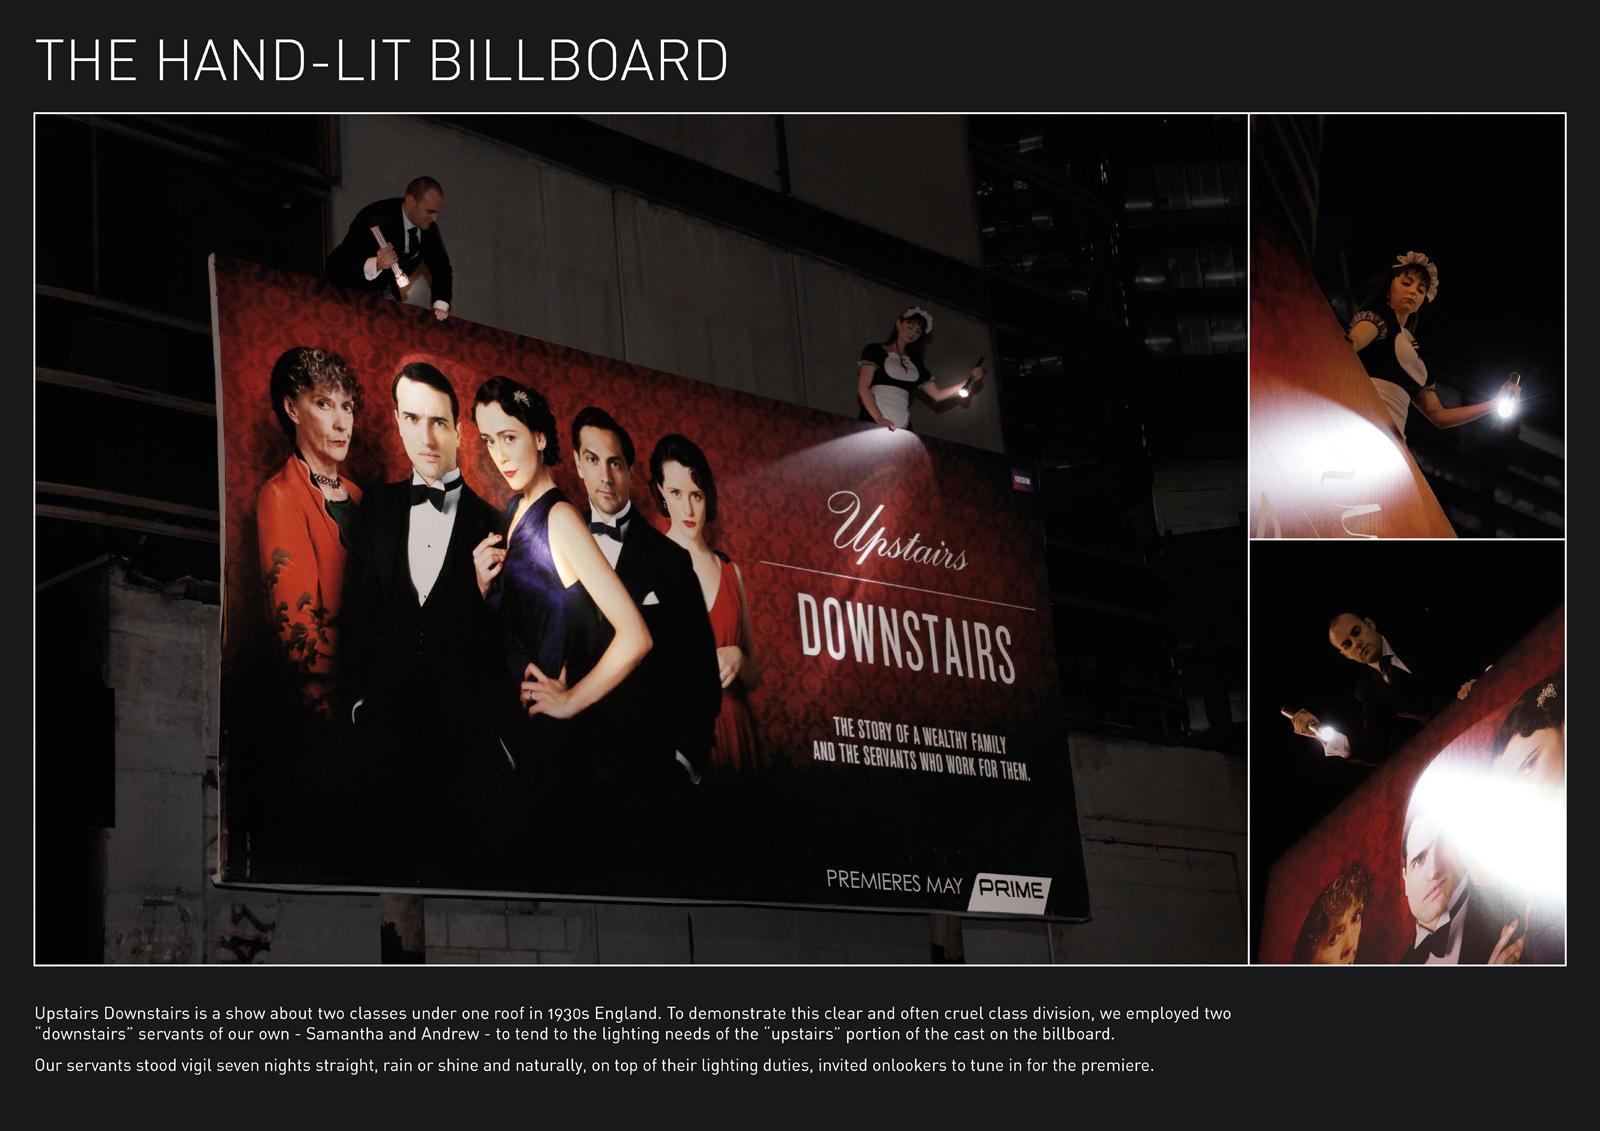 Upstairs Downstairs Outdoor Ad -  The Hand-lit billboard